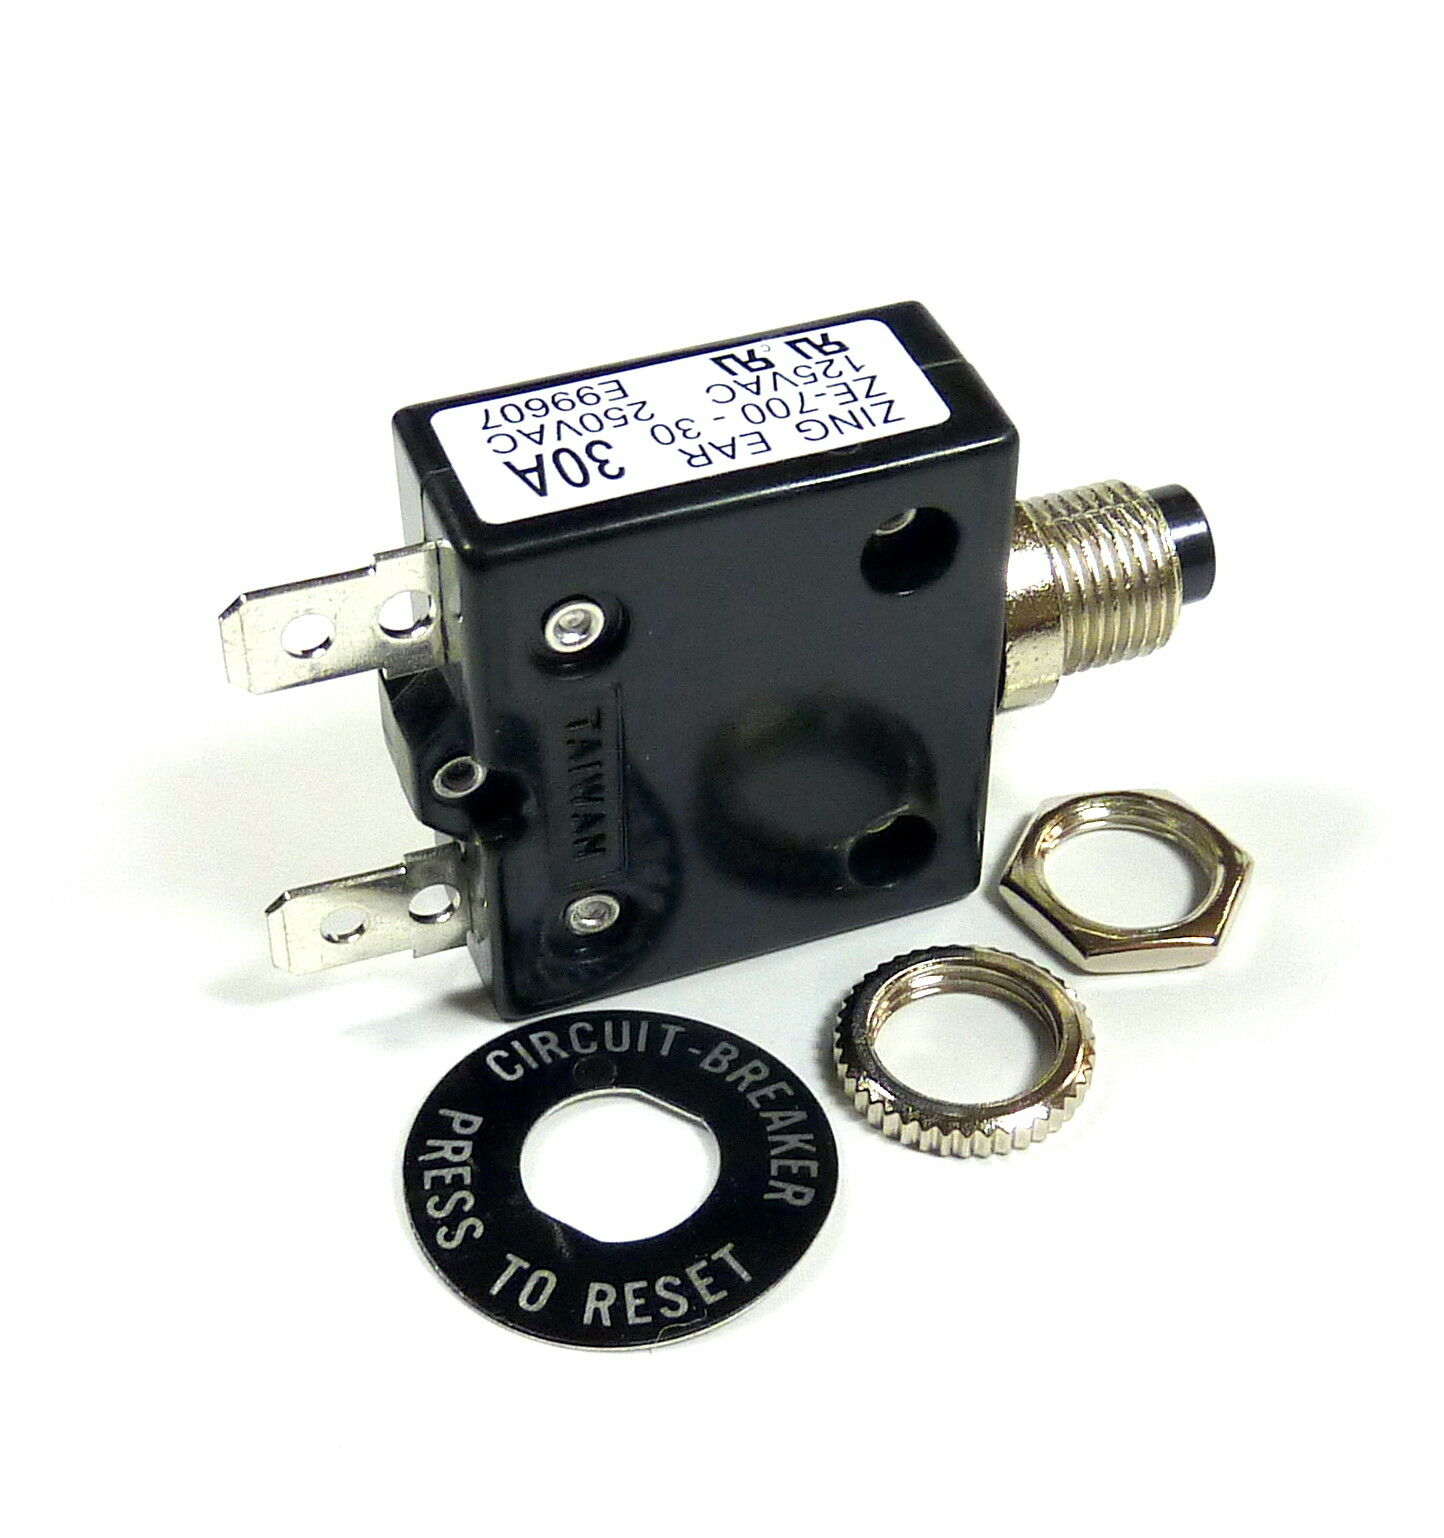 ZE700-15A Zing Ear thermal circuit breaker replaces Carling P/&B Kuoyeh Joemex